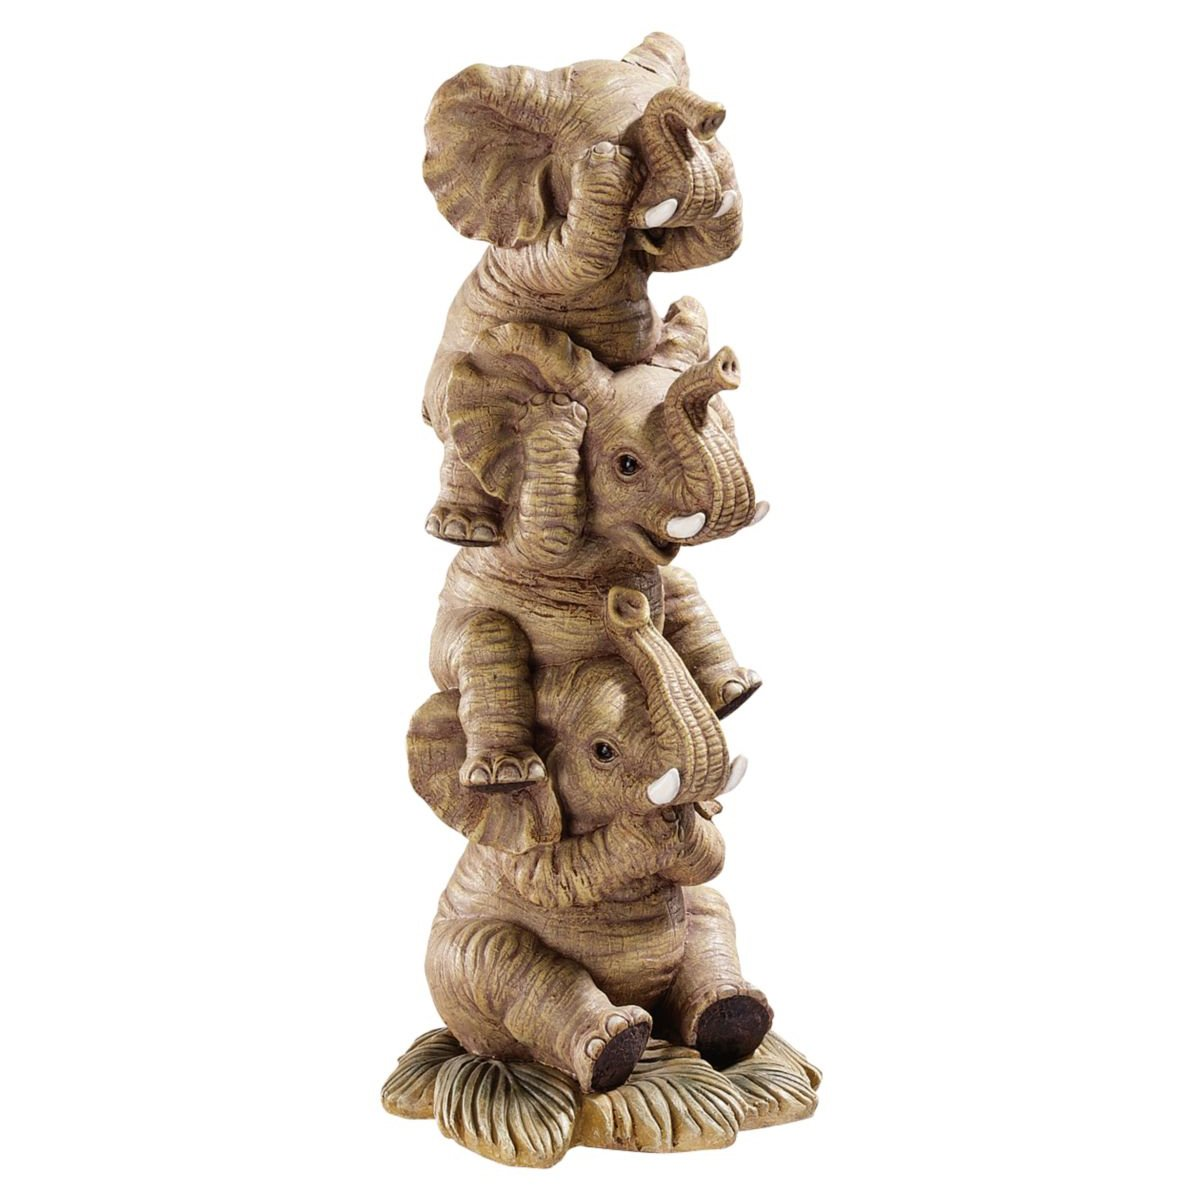 Design Toscano Hear-No, See-No, Speak-No Evil Stacked Elephants Collectible Statue, 10 Inch, Polyresin, Full Color